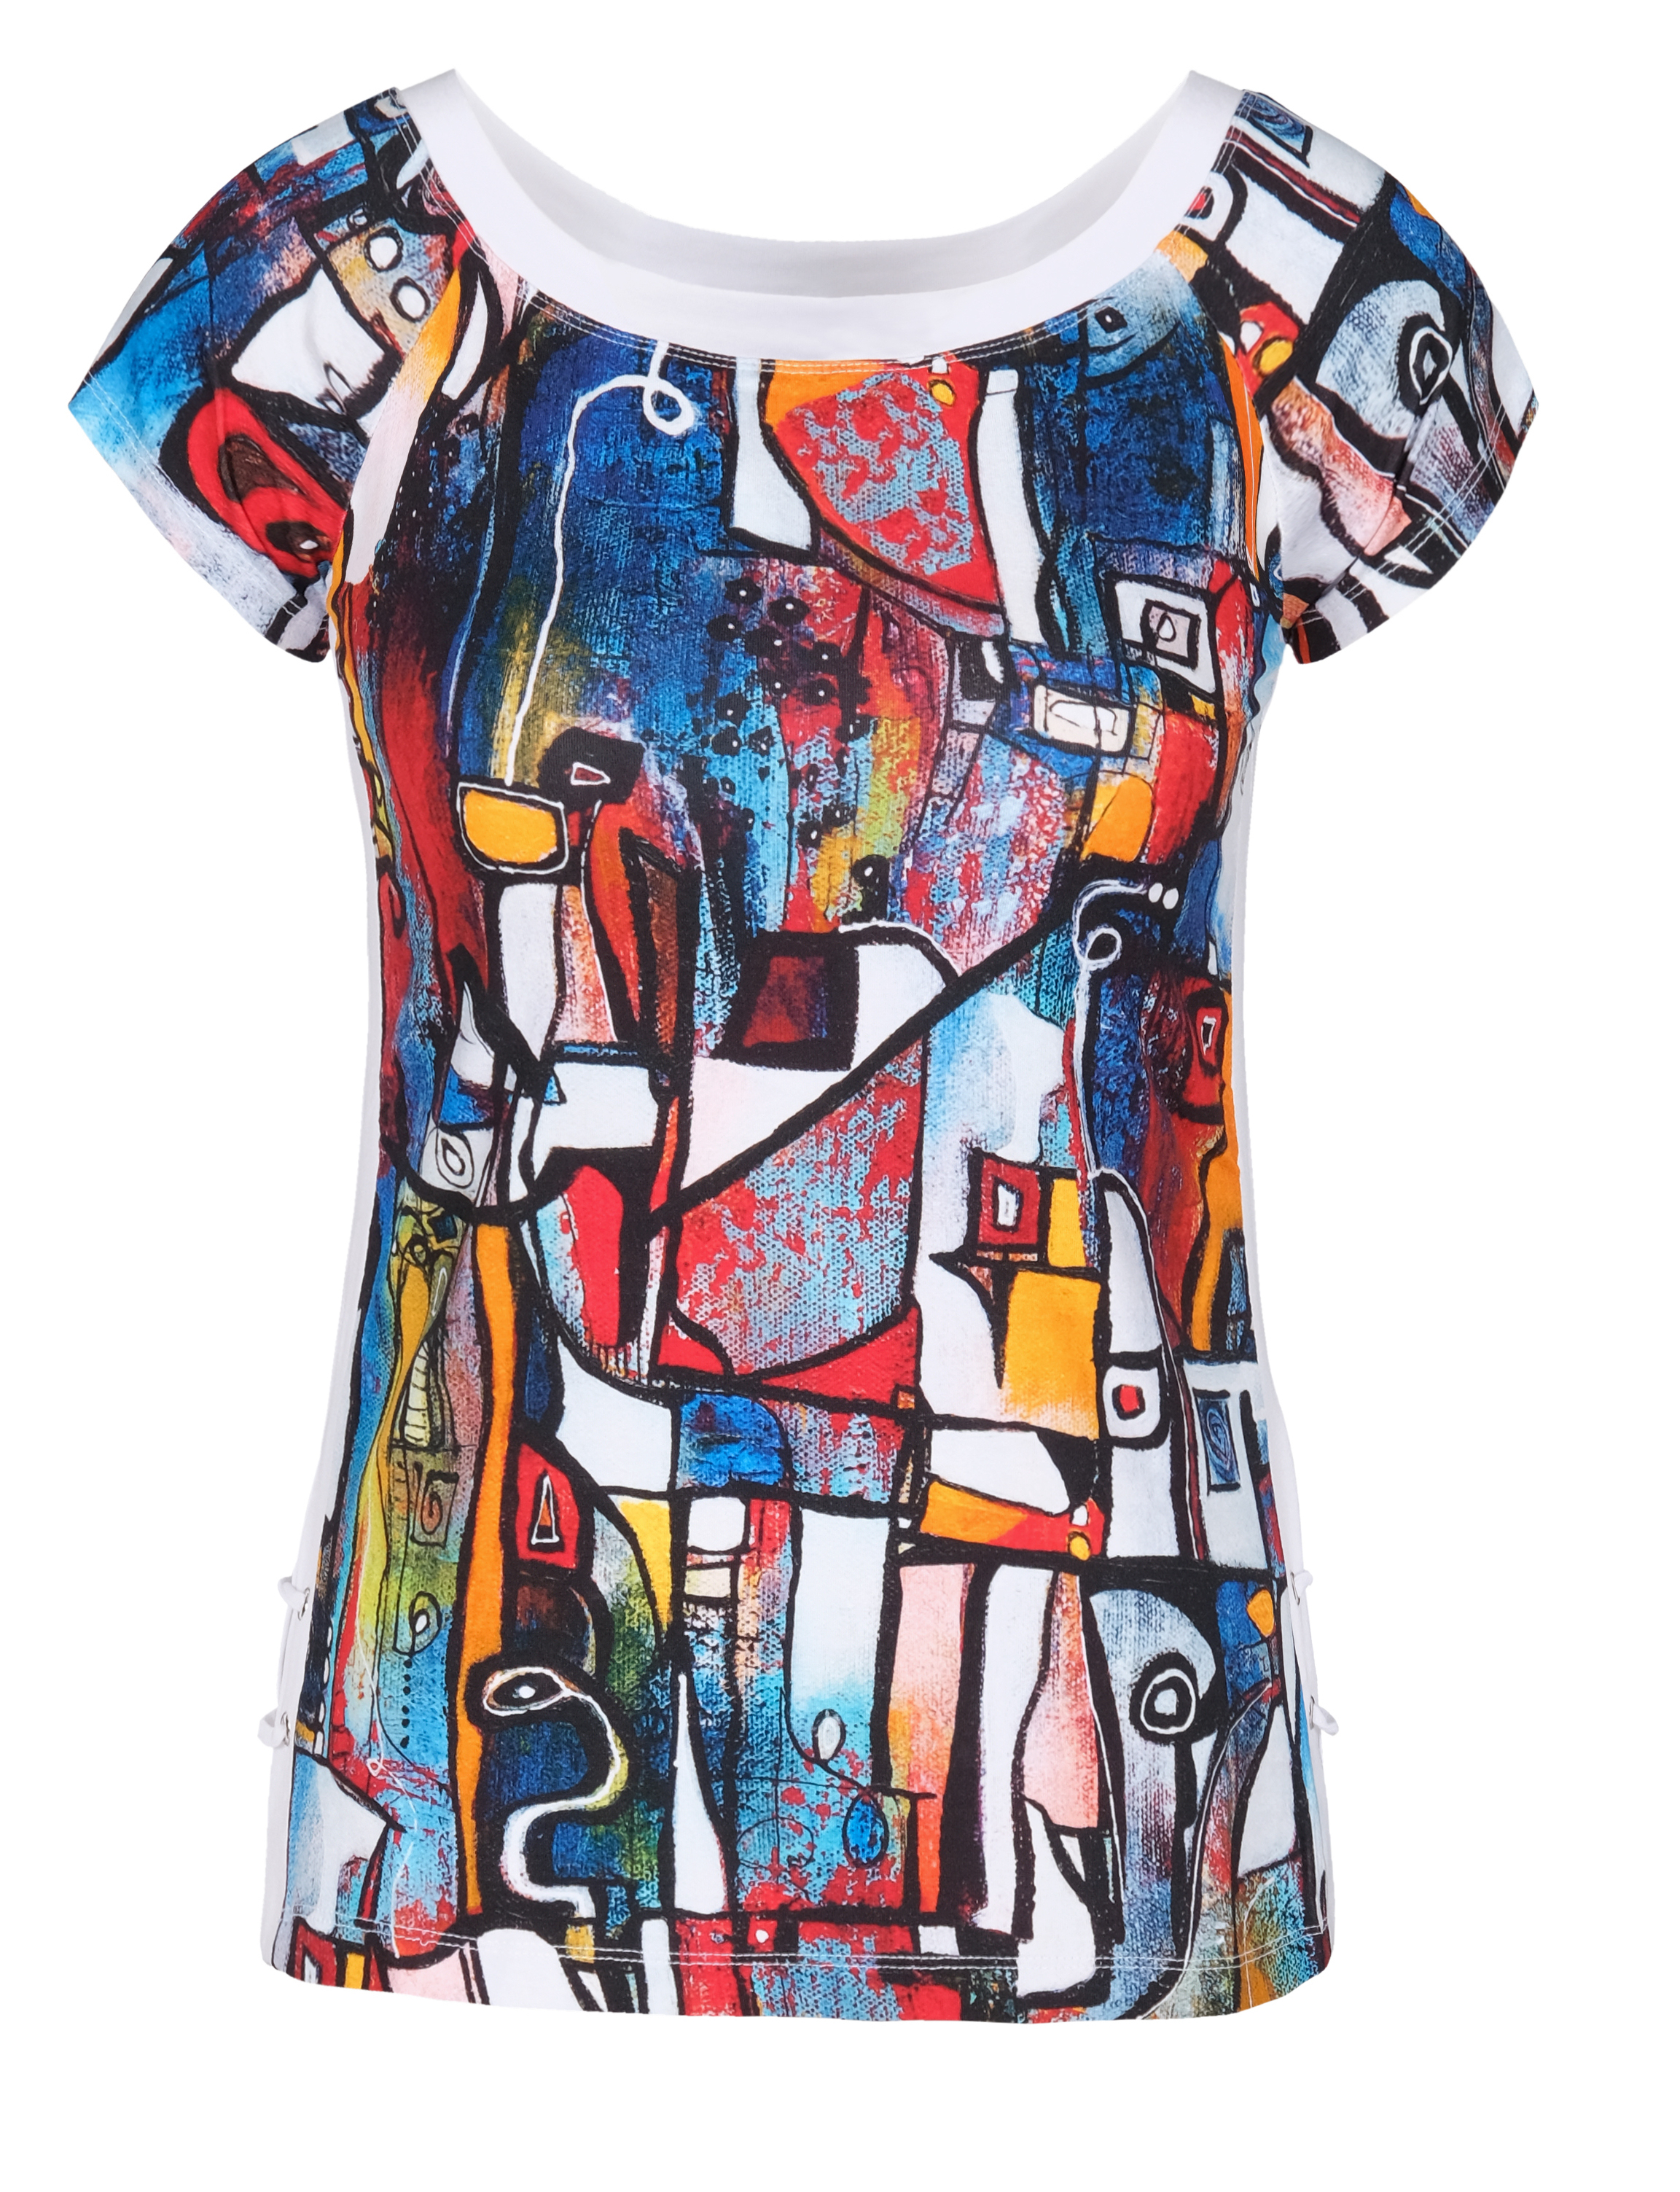 Simply Art Dolcezza: It's Complicated Crazy Cool Abstract Art Portrait Neck Top Dolcezza_SimplyArt_21711